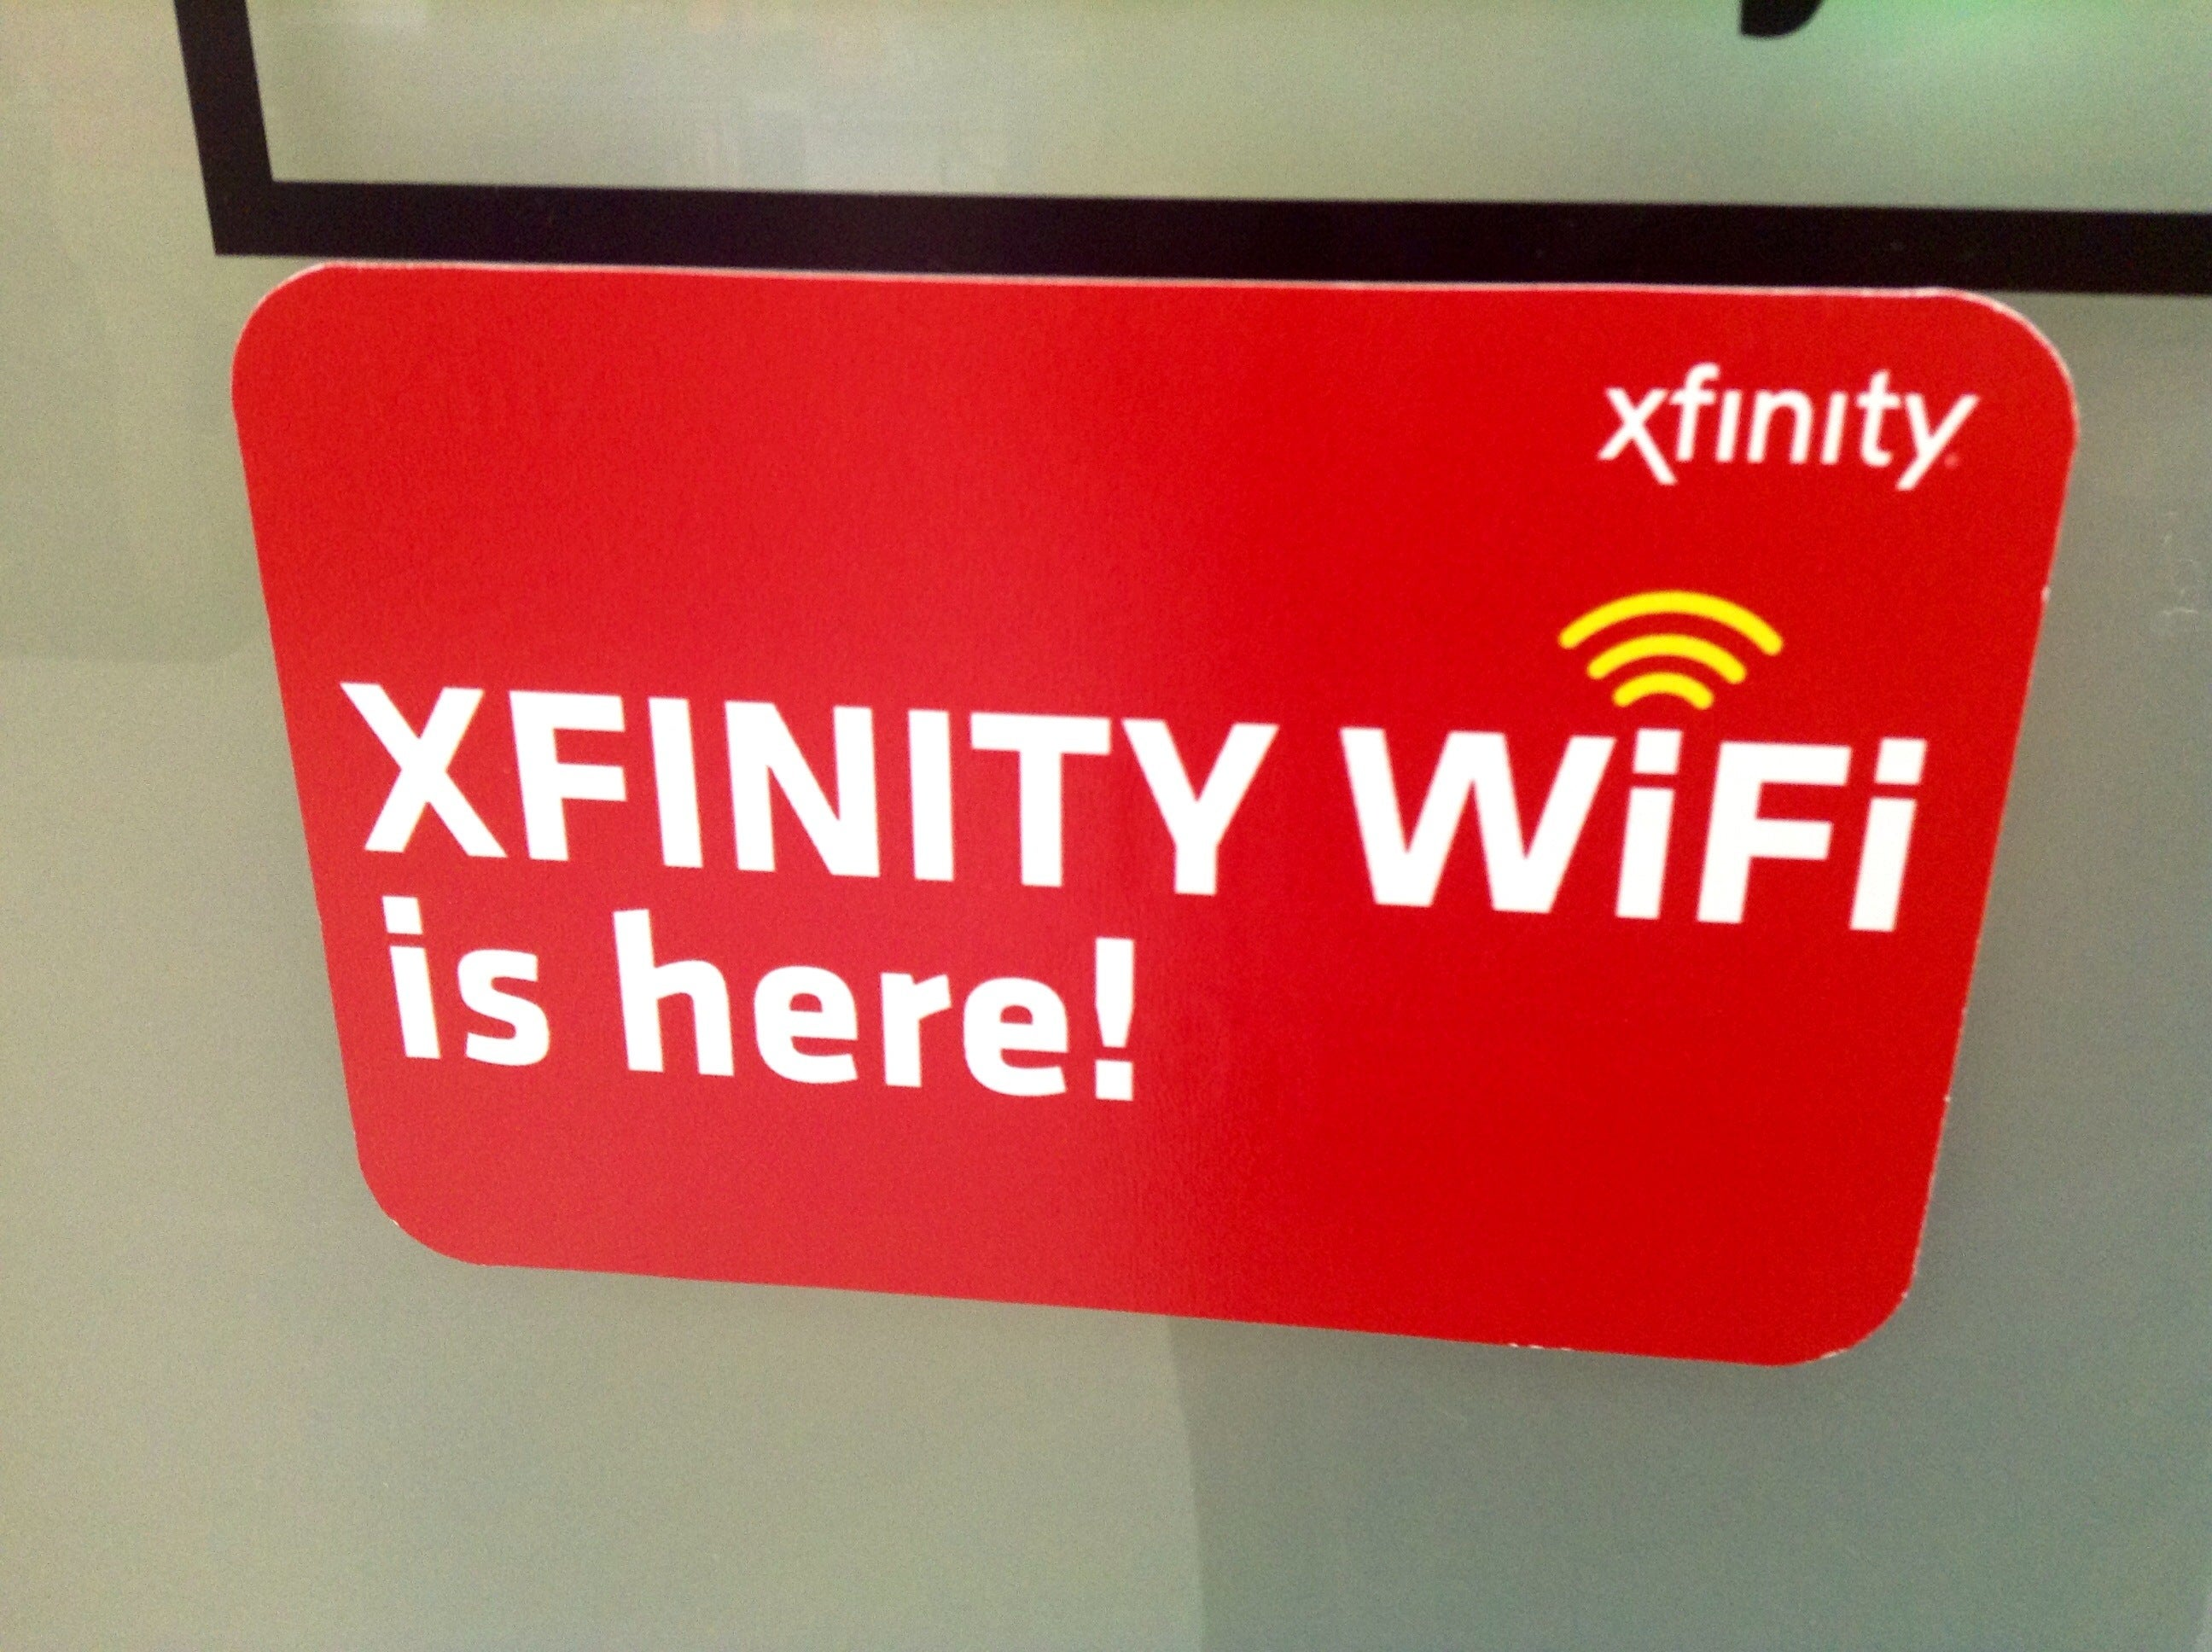 To Xfinity WiFi we're all hotspots, but you don't have to be | PCWorld